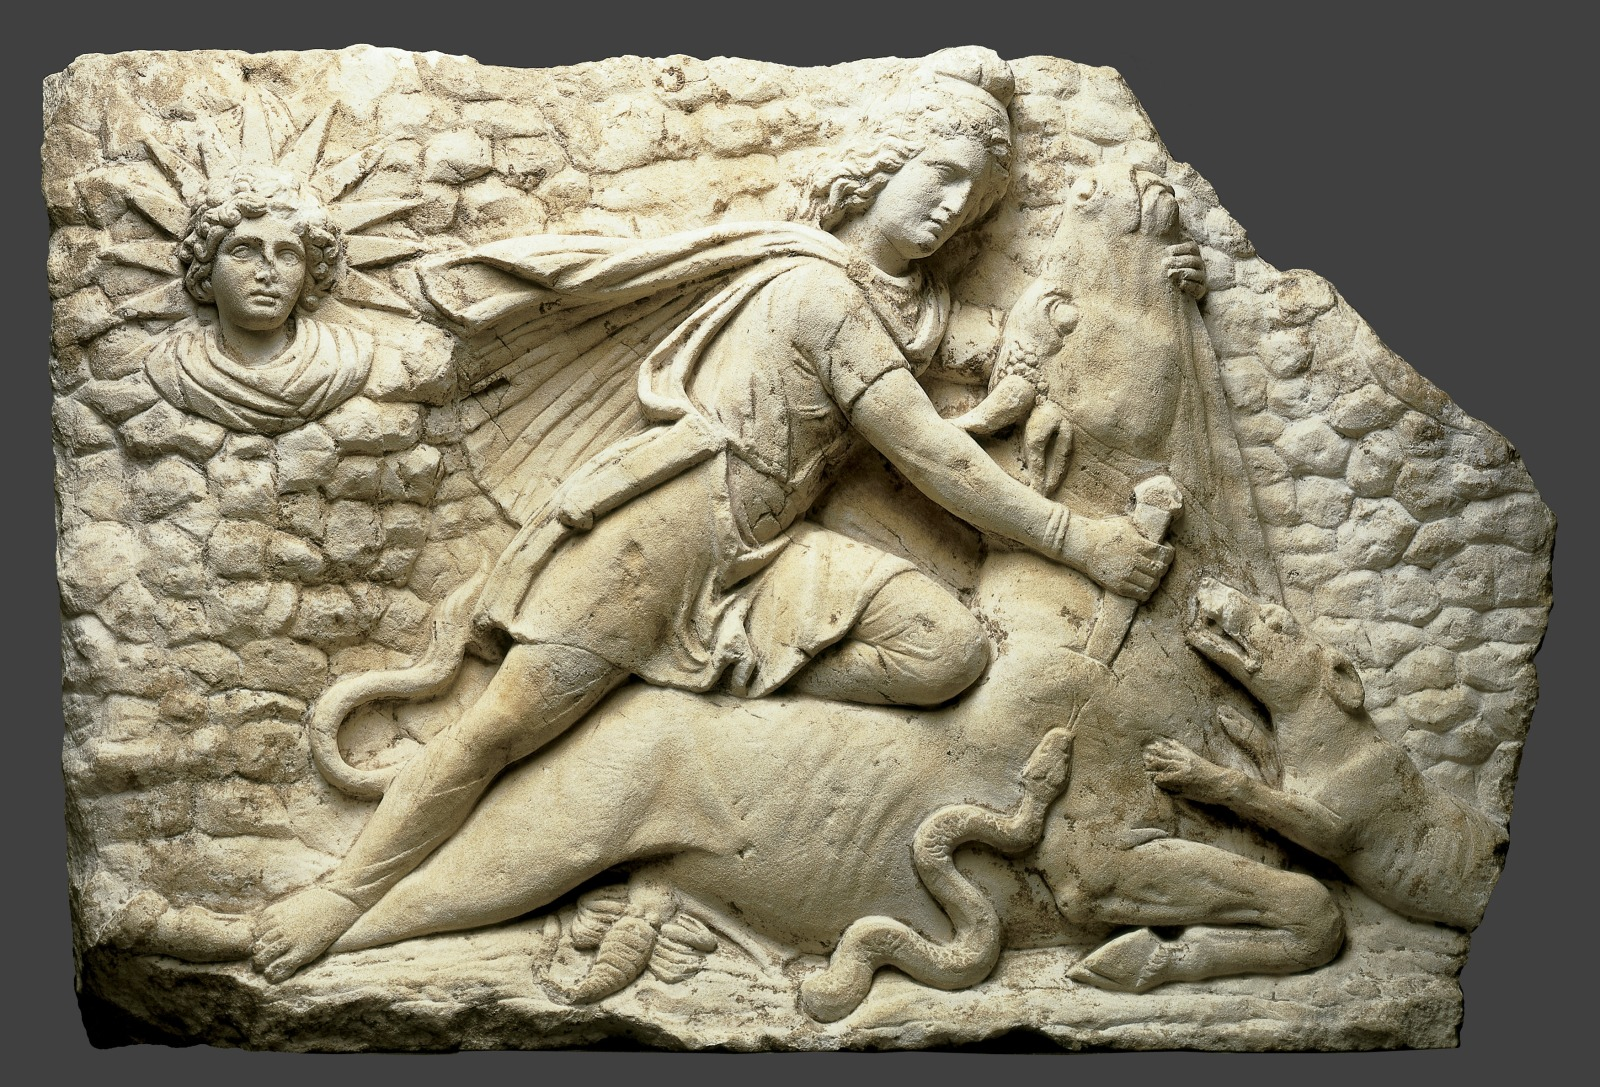 Mithraic Relief with Bull